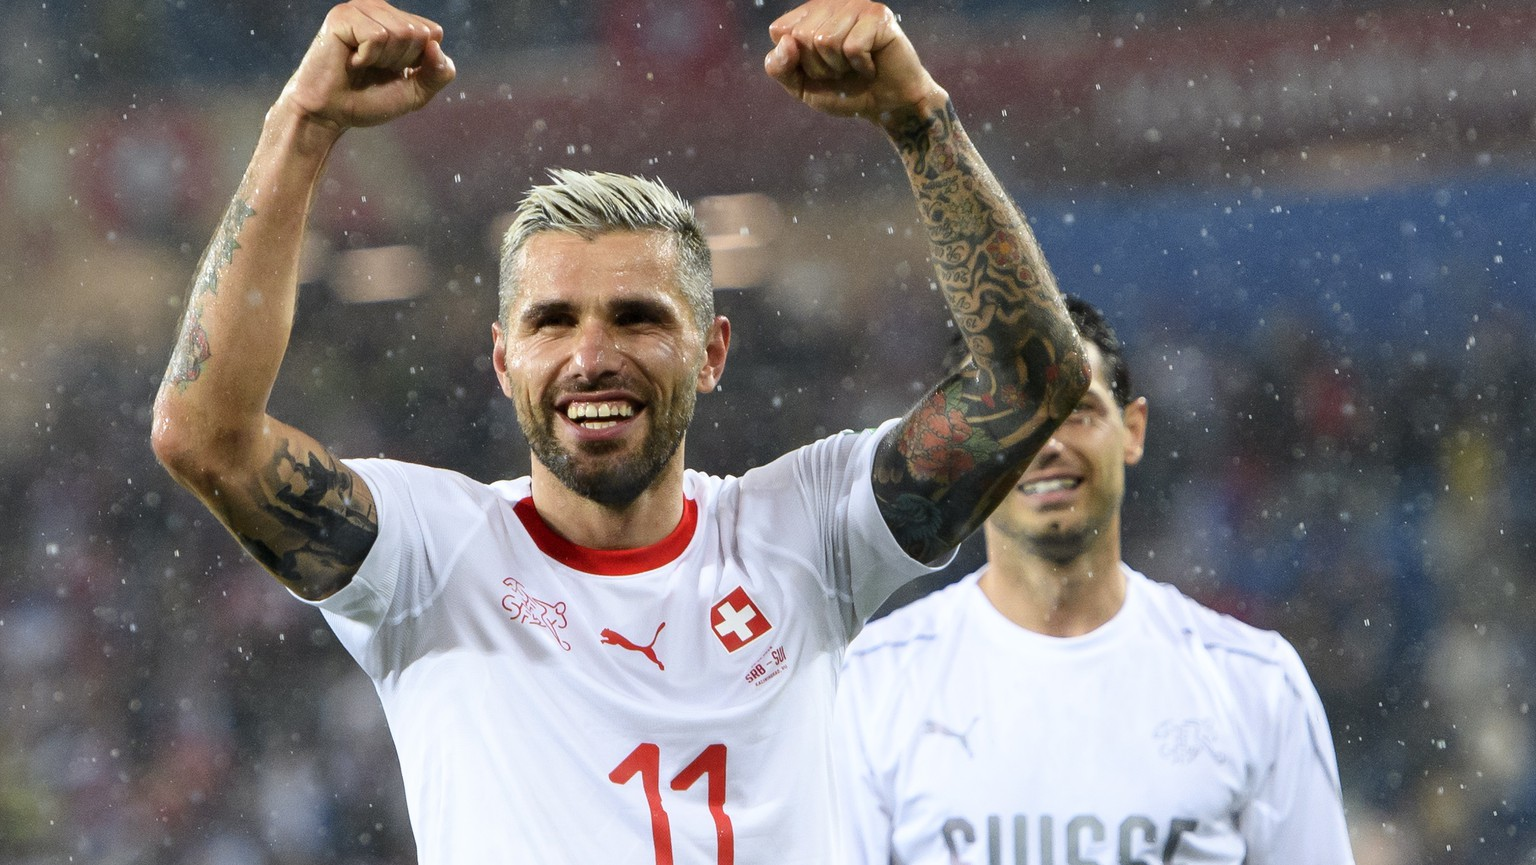 epa06832250 Switzerland's midfielder Valon Behrami celebrates the victory during the FIFA World Cup 2018 group E preliminary round soccer match between Switzerland and Serbia at the Arena Baltika Stadium in Kaliningrad, Russia, 22 June 2018.  EPA/LAURENT GILLIERON